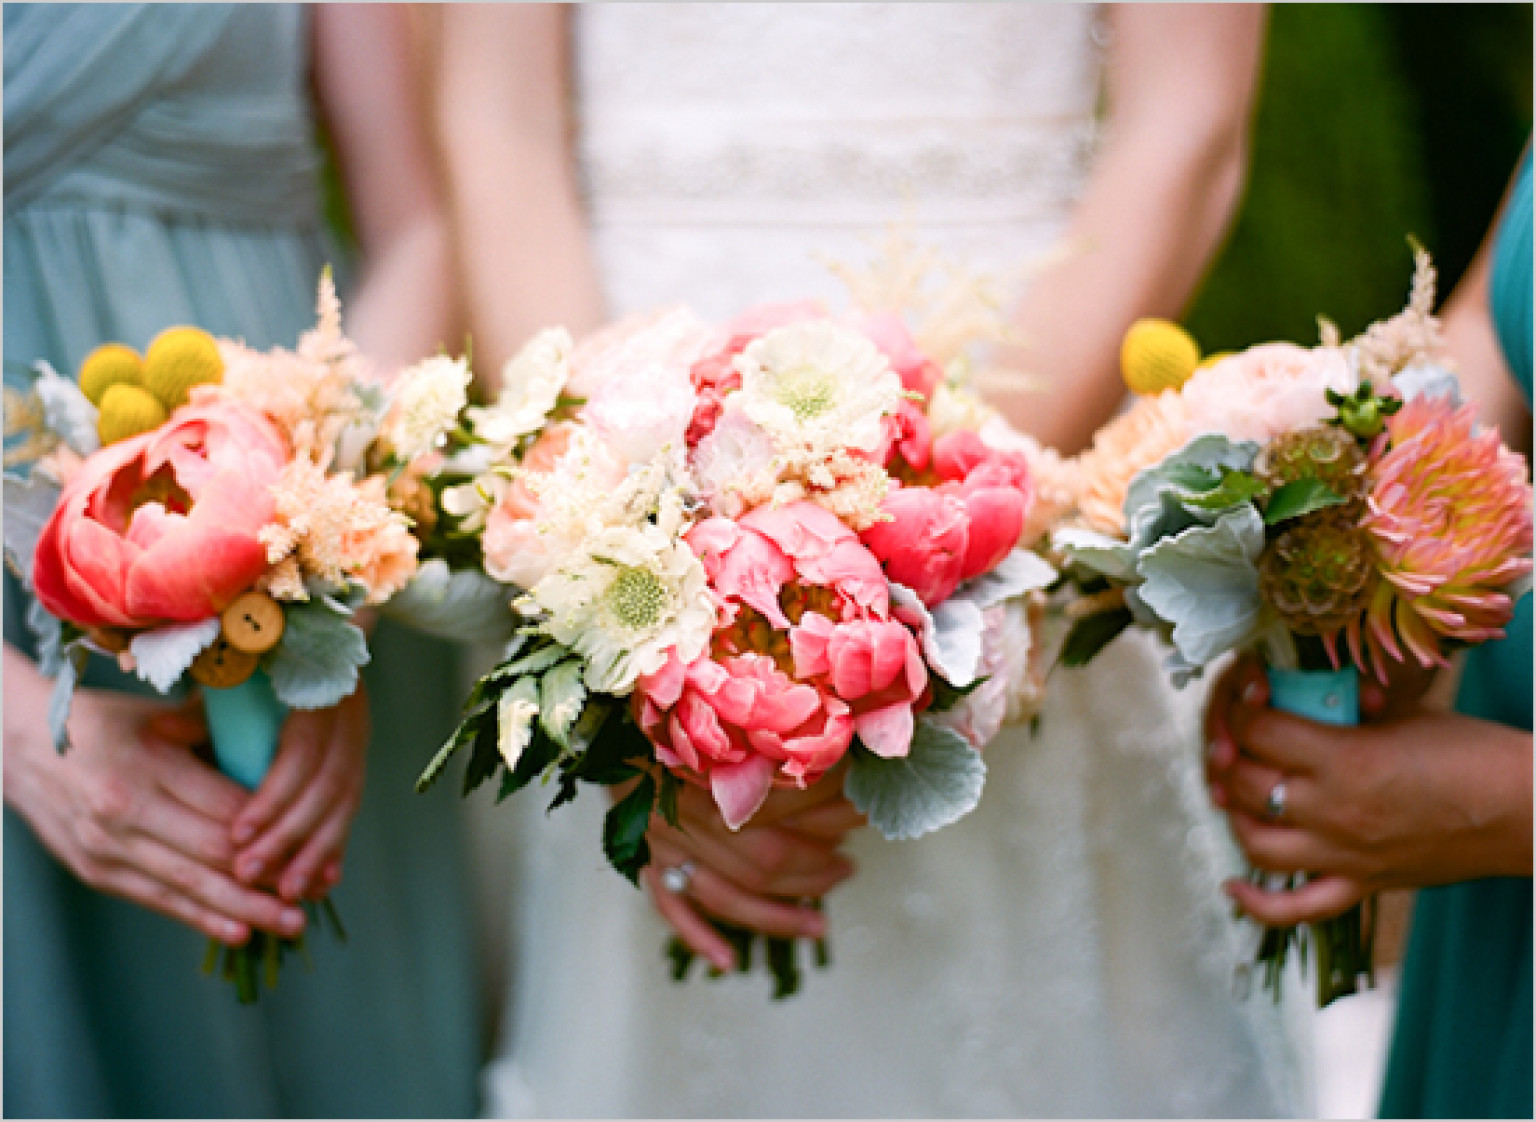 Wedding Flowers: These Autumnal Offerings Are Perfect For